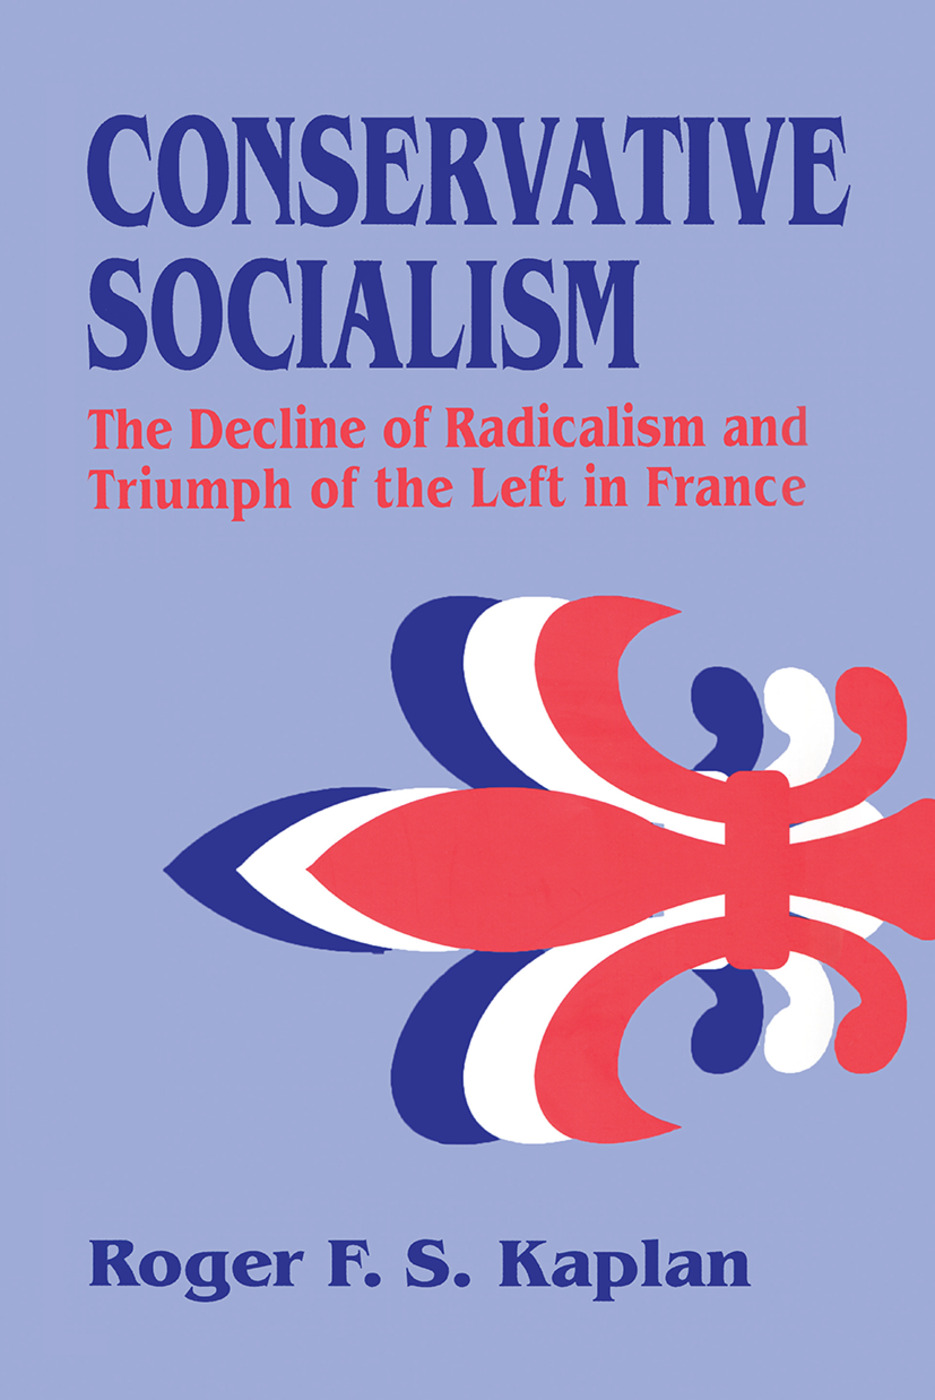 Conservative Socialism: The Decline of Radicalism and the Triumph of the Left in France book cover